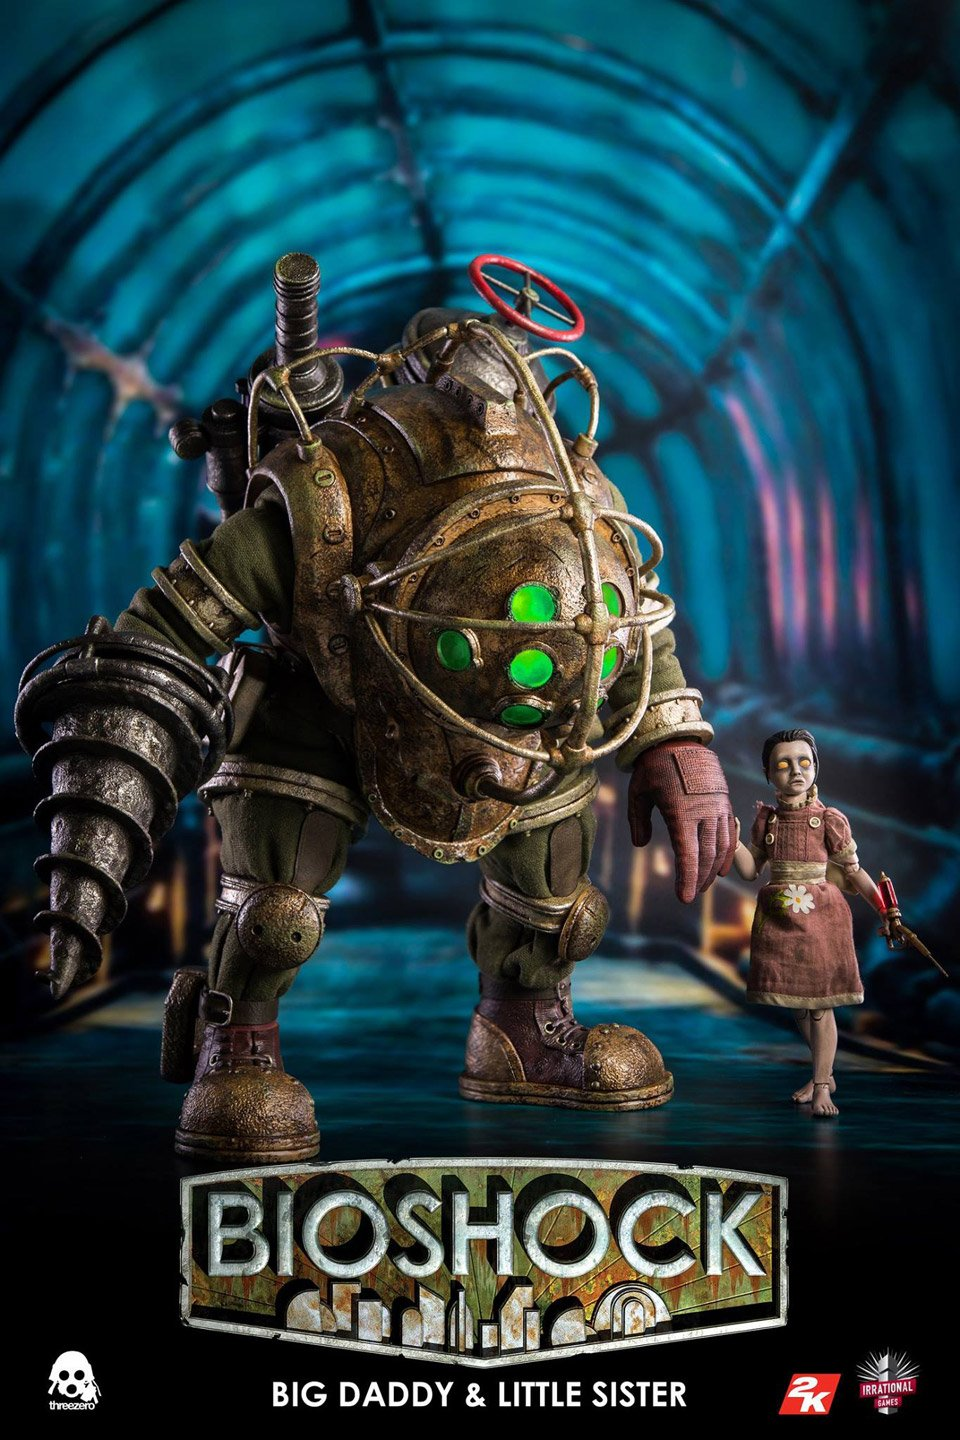 BioShock Big Daddy/Little Sister Figures